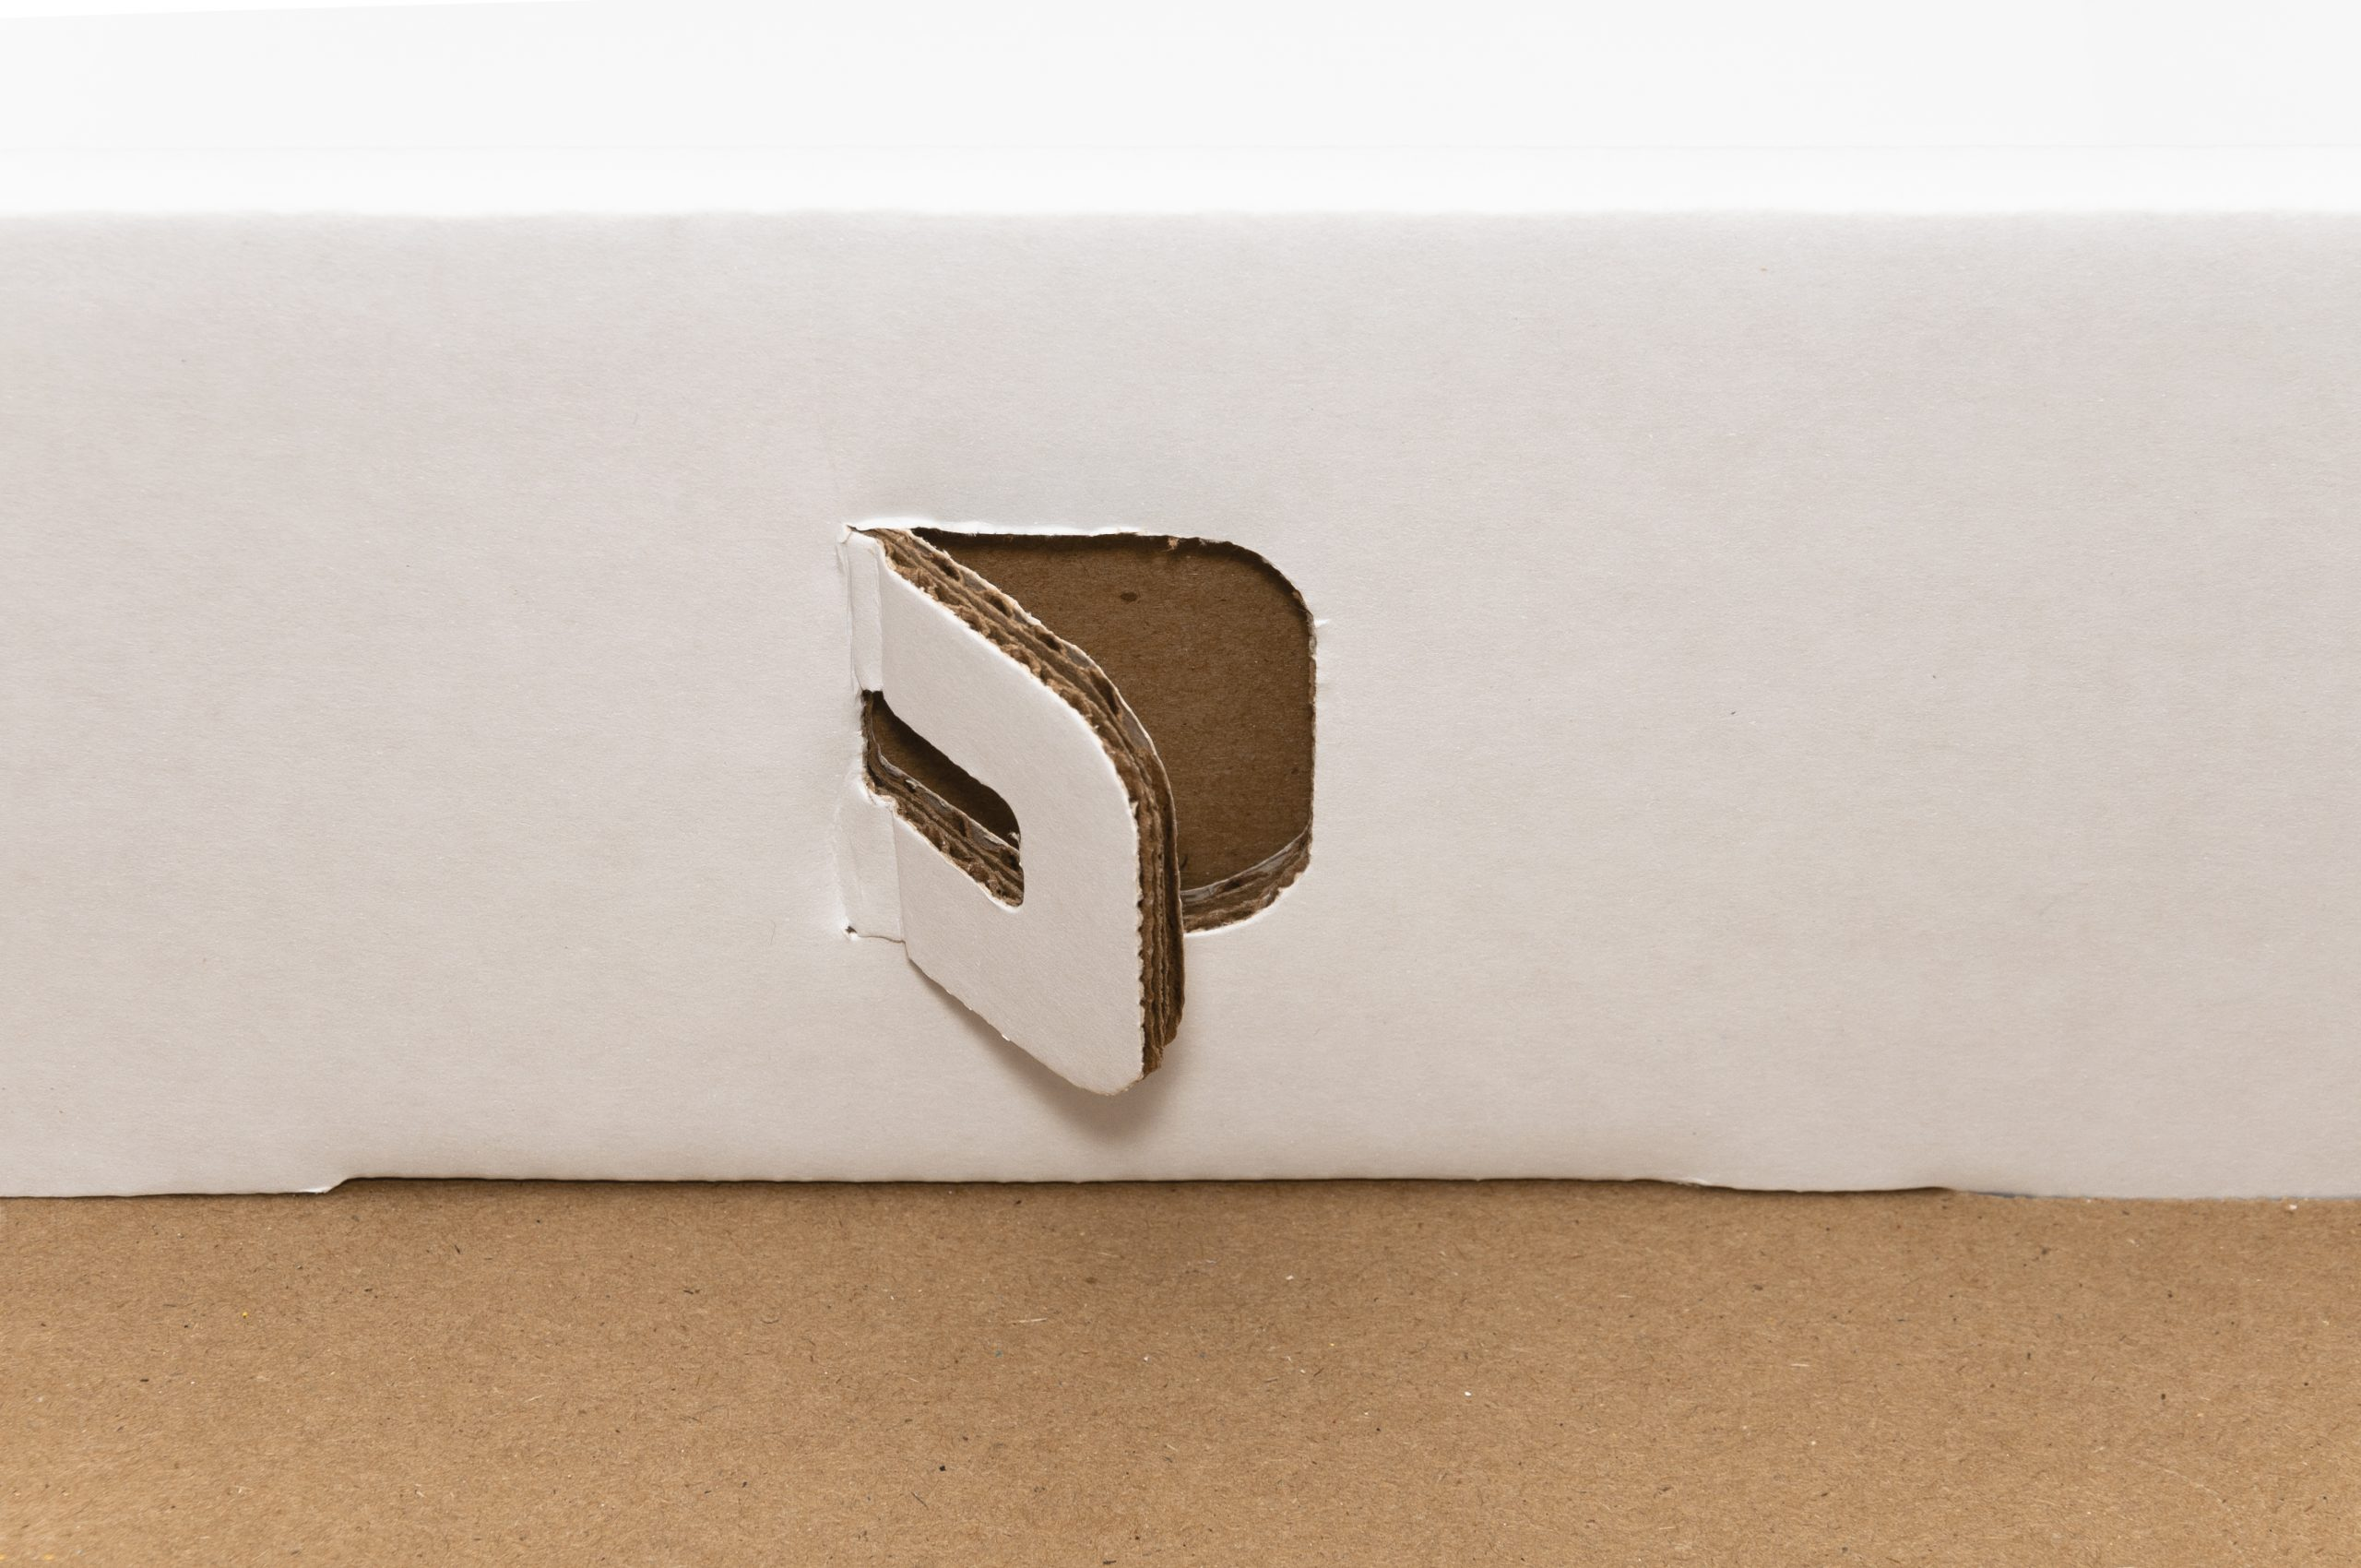 Bespoke packaging and design